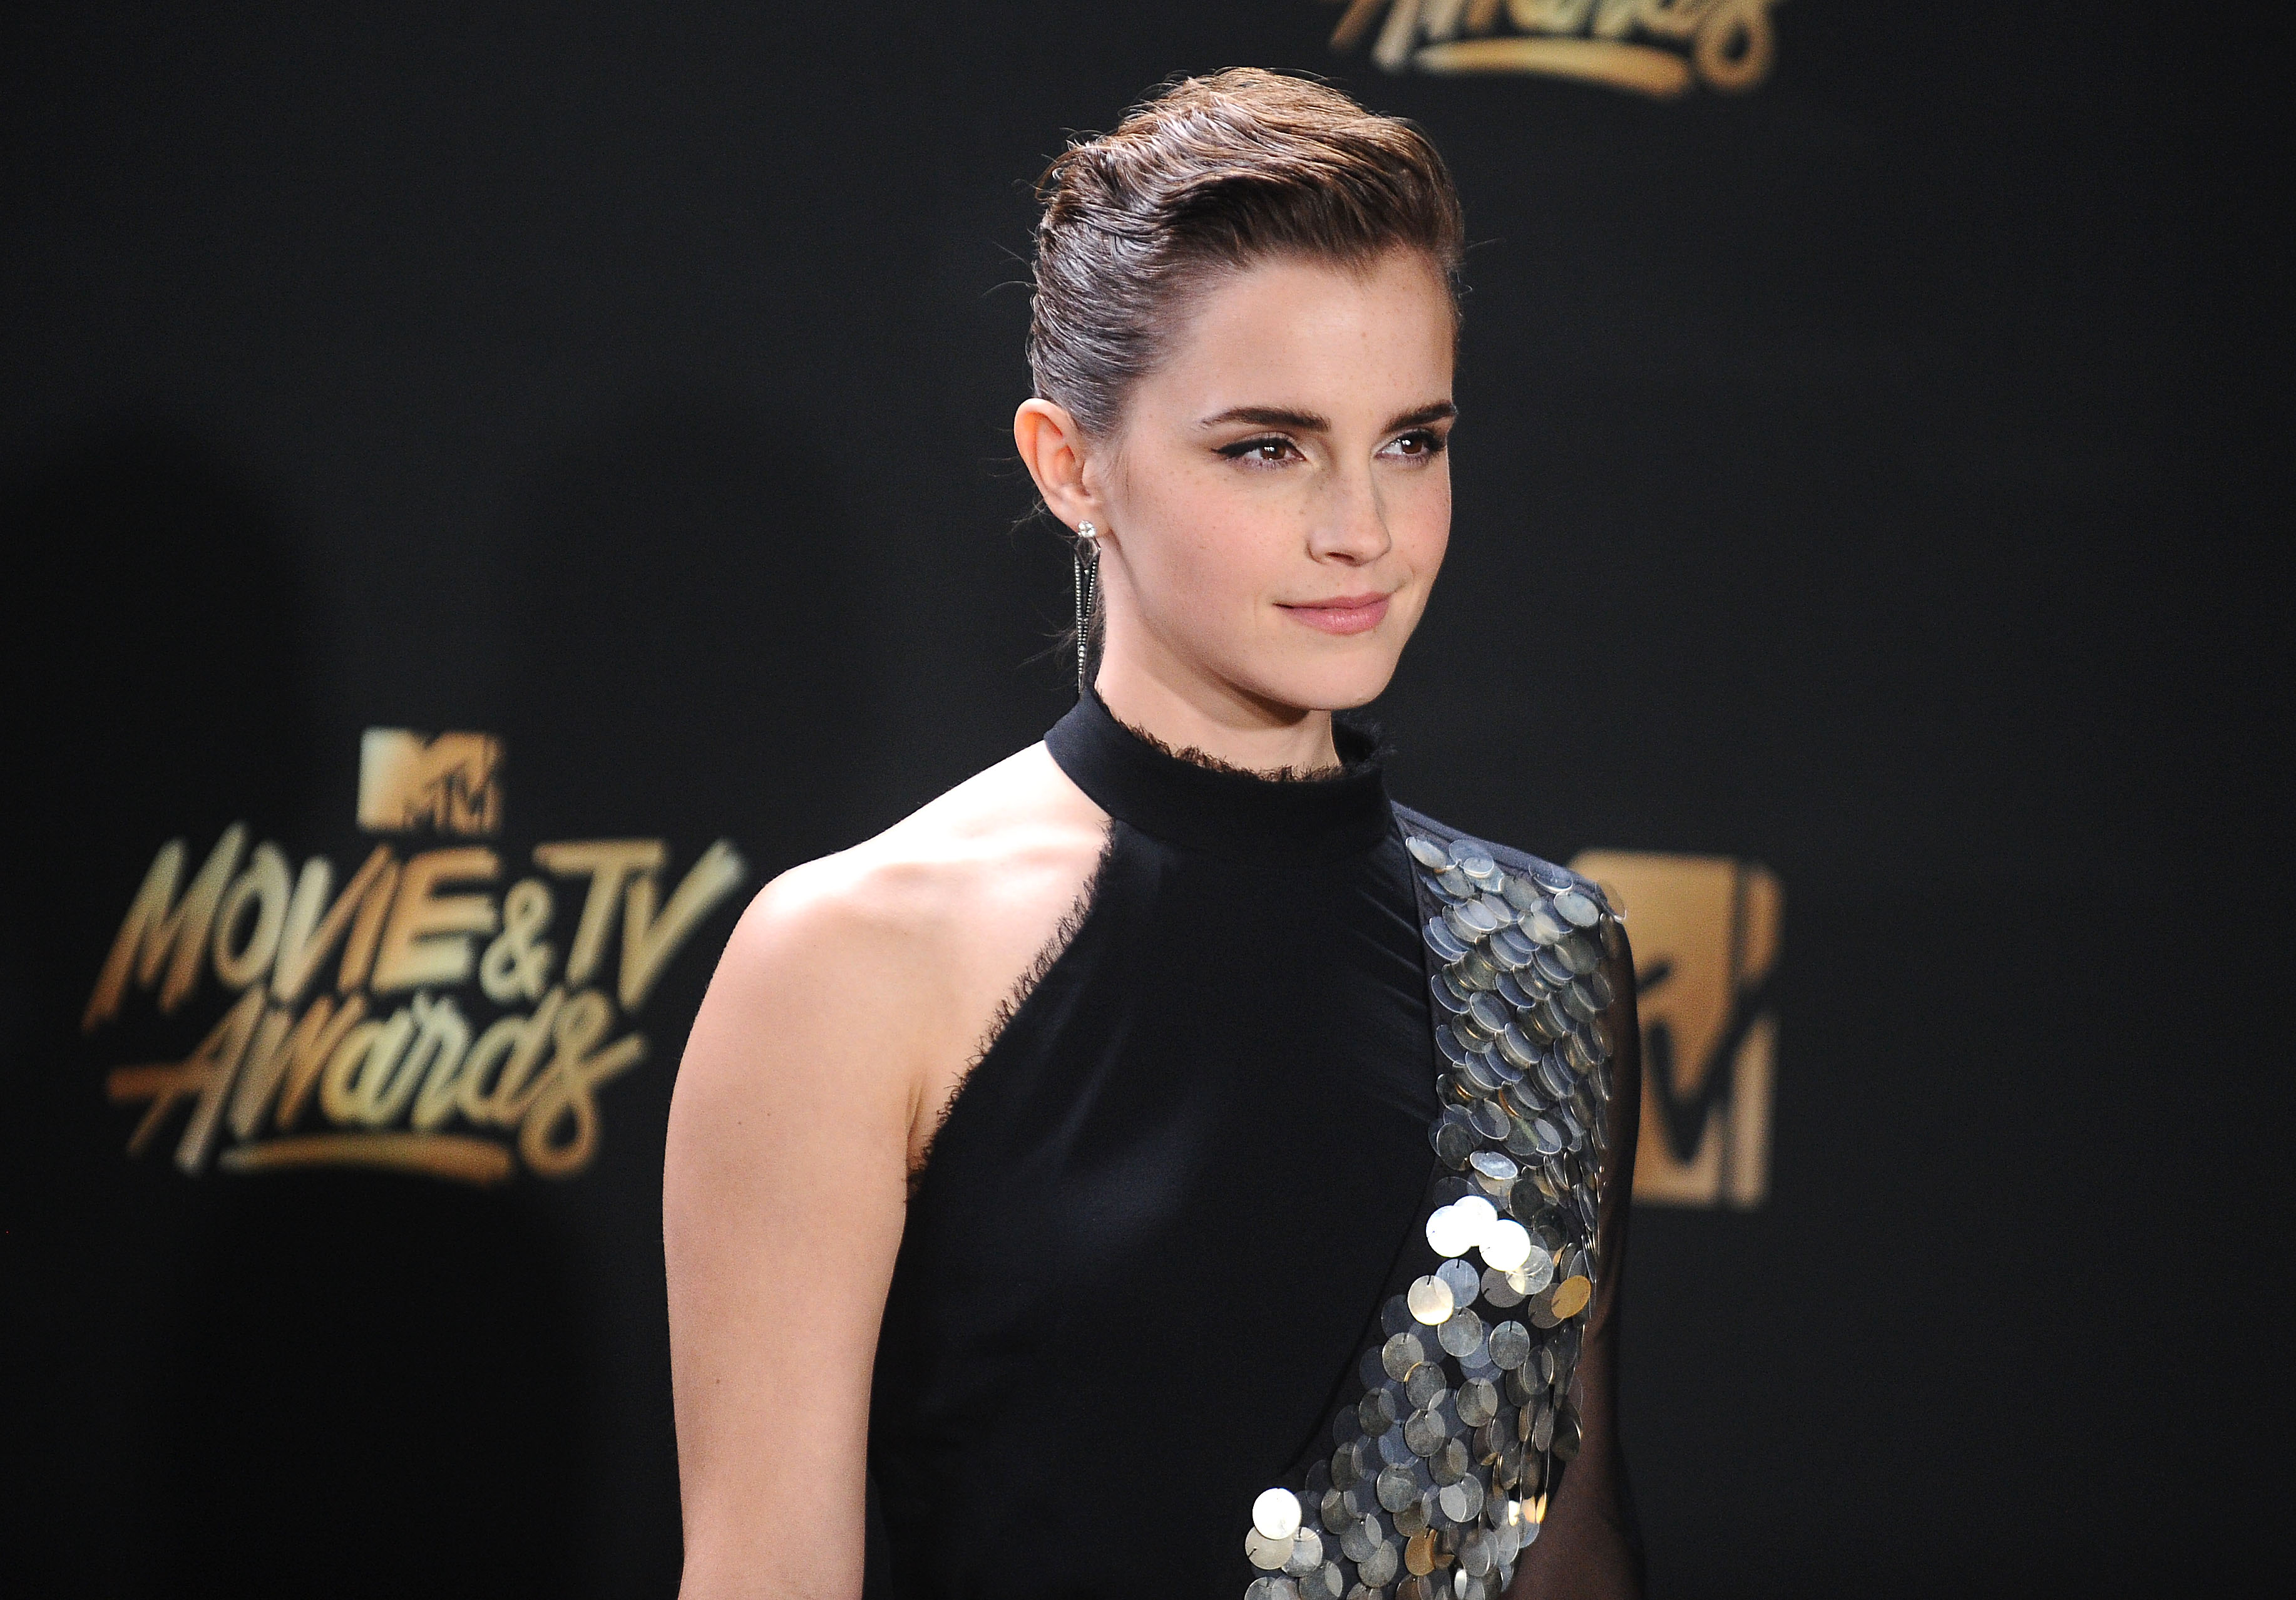 LOS ANGELES, CA - MAY 07:  Actress Emma Watson poses in the press room at the 2017 MTV Movie and TV Awards at The Shrine Auditorium on May 7, 2017 in Los Angeles, California.  (Photo by Jason LaVeris/FilmMagic)